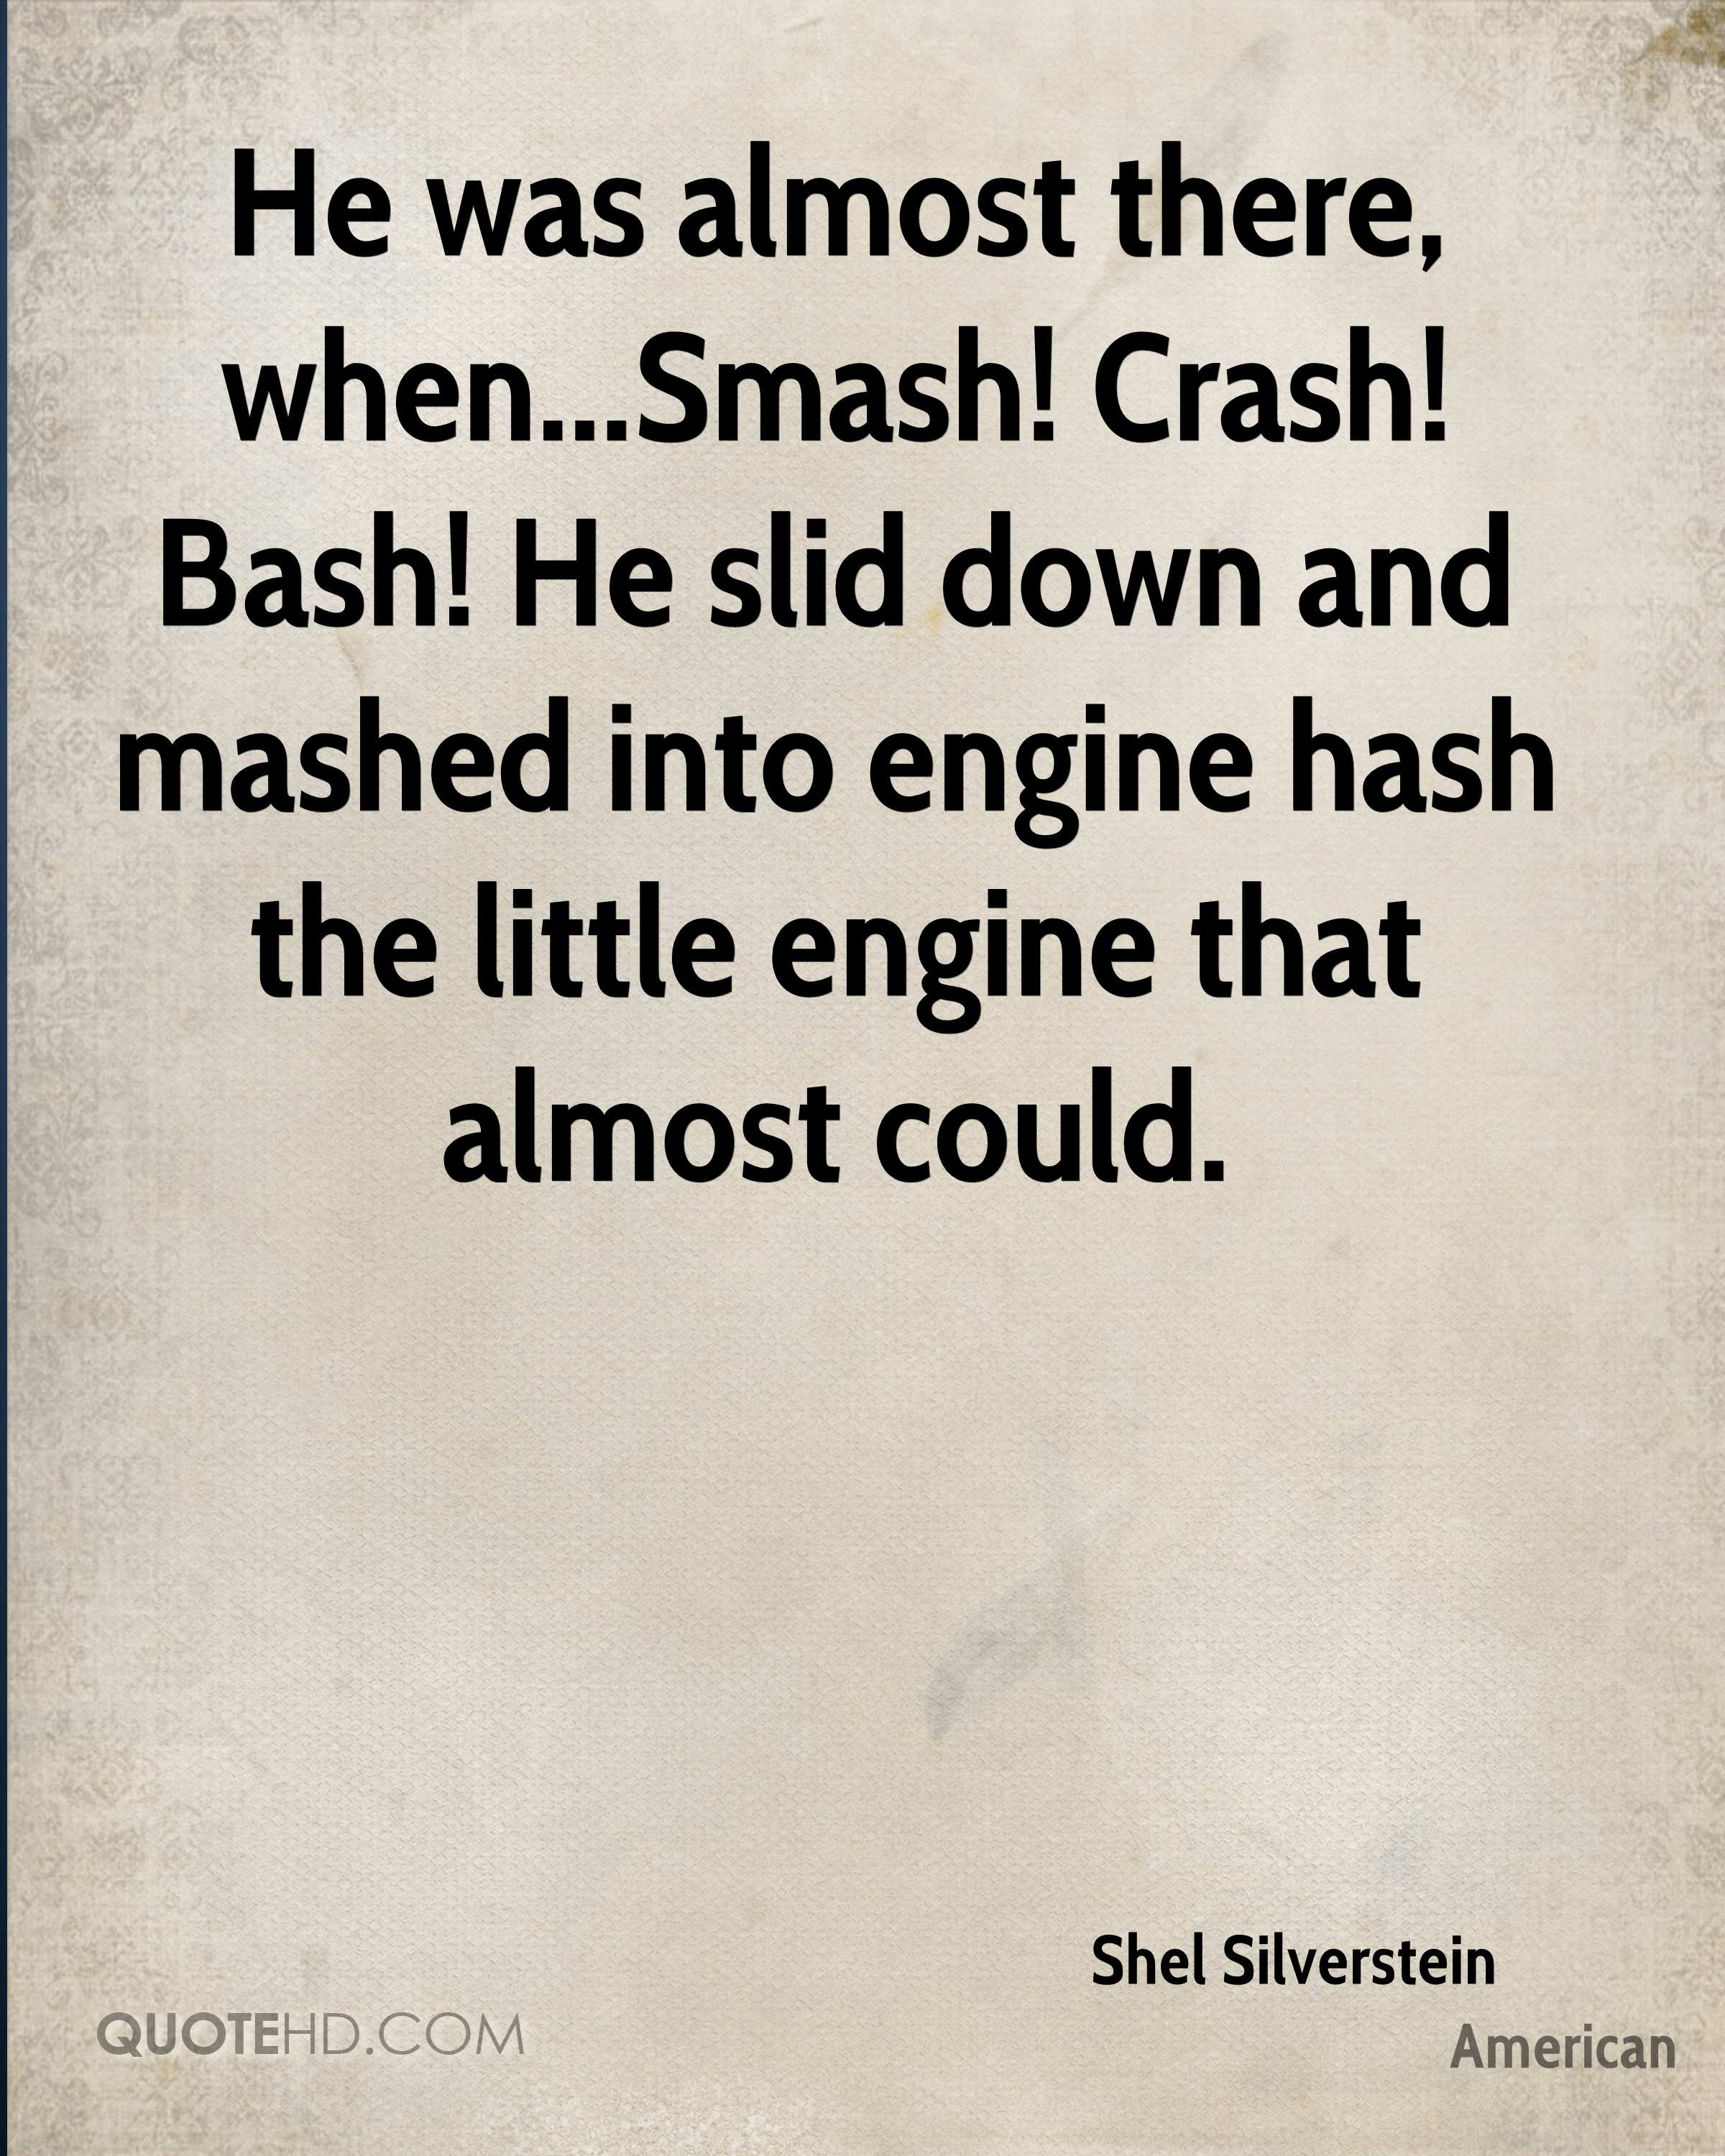 He was almost there, when...Smash! Crash! Bash! He slid down and mashed into engine hash the little engine that almost could.